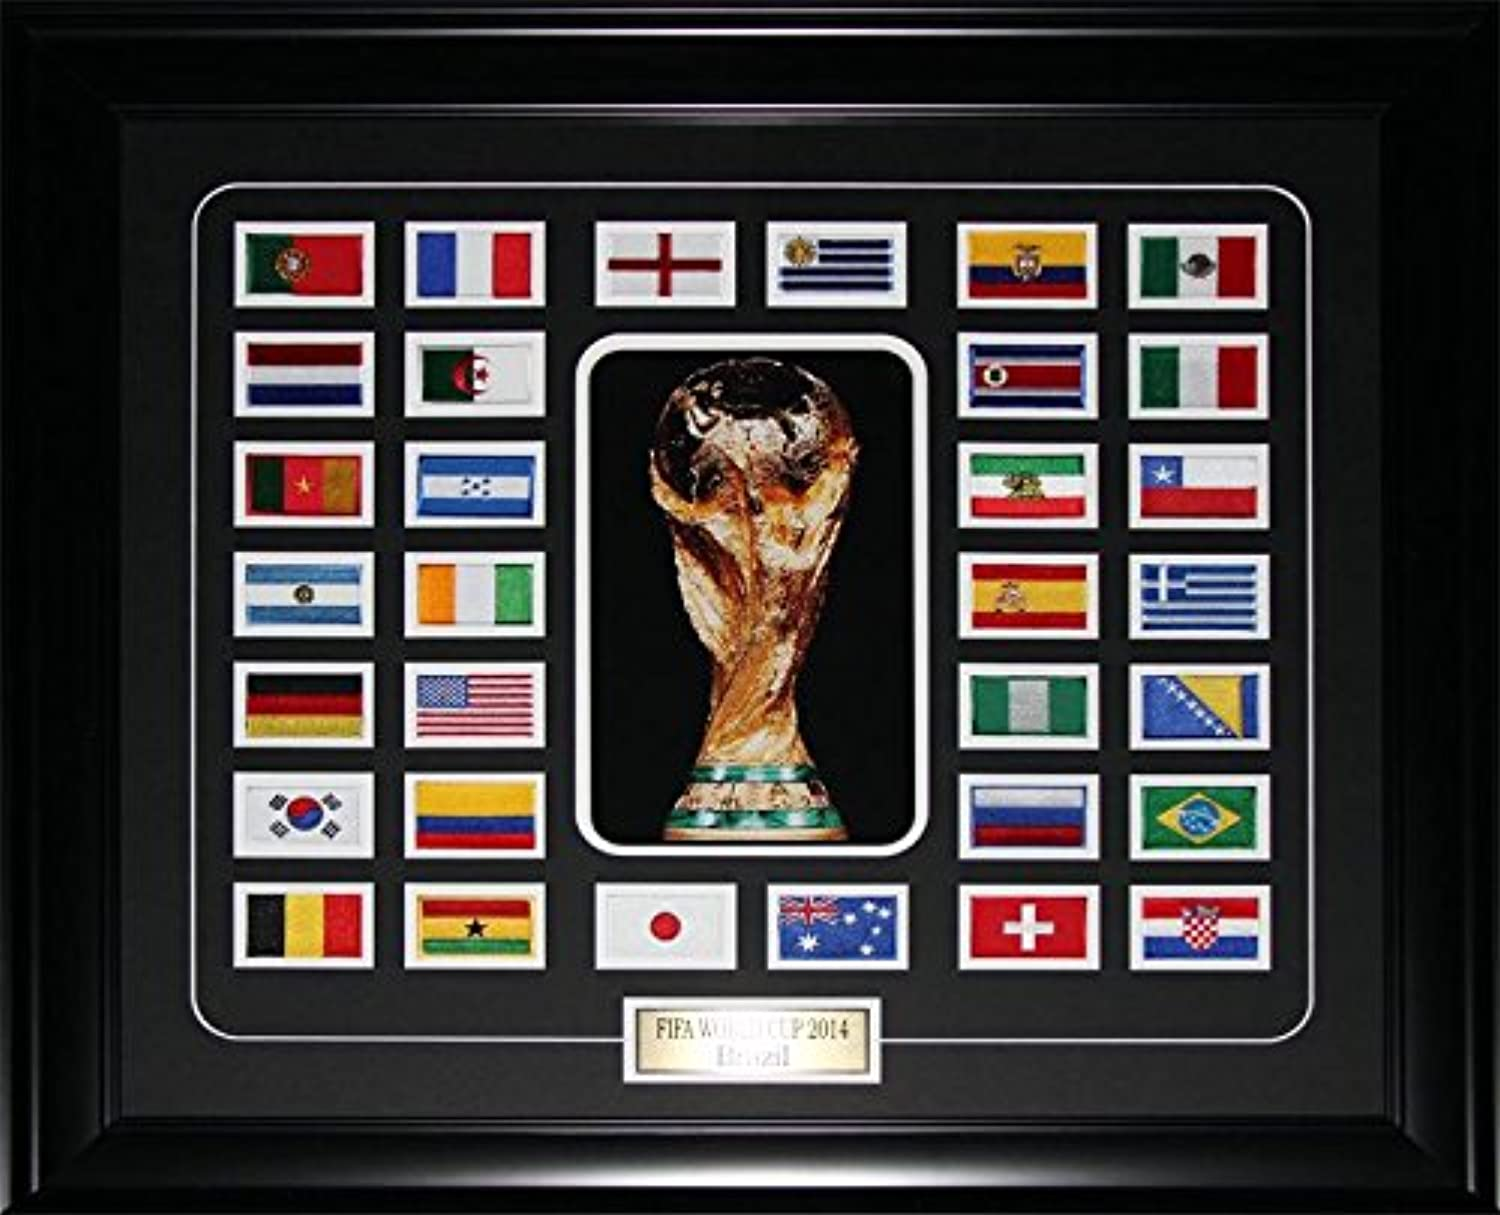 FIFA 2014 World Cup Final 32 Team Patch Soccer Memorabilia Collector Frame